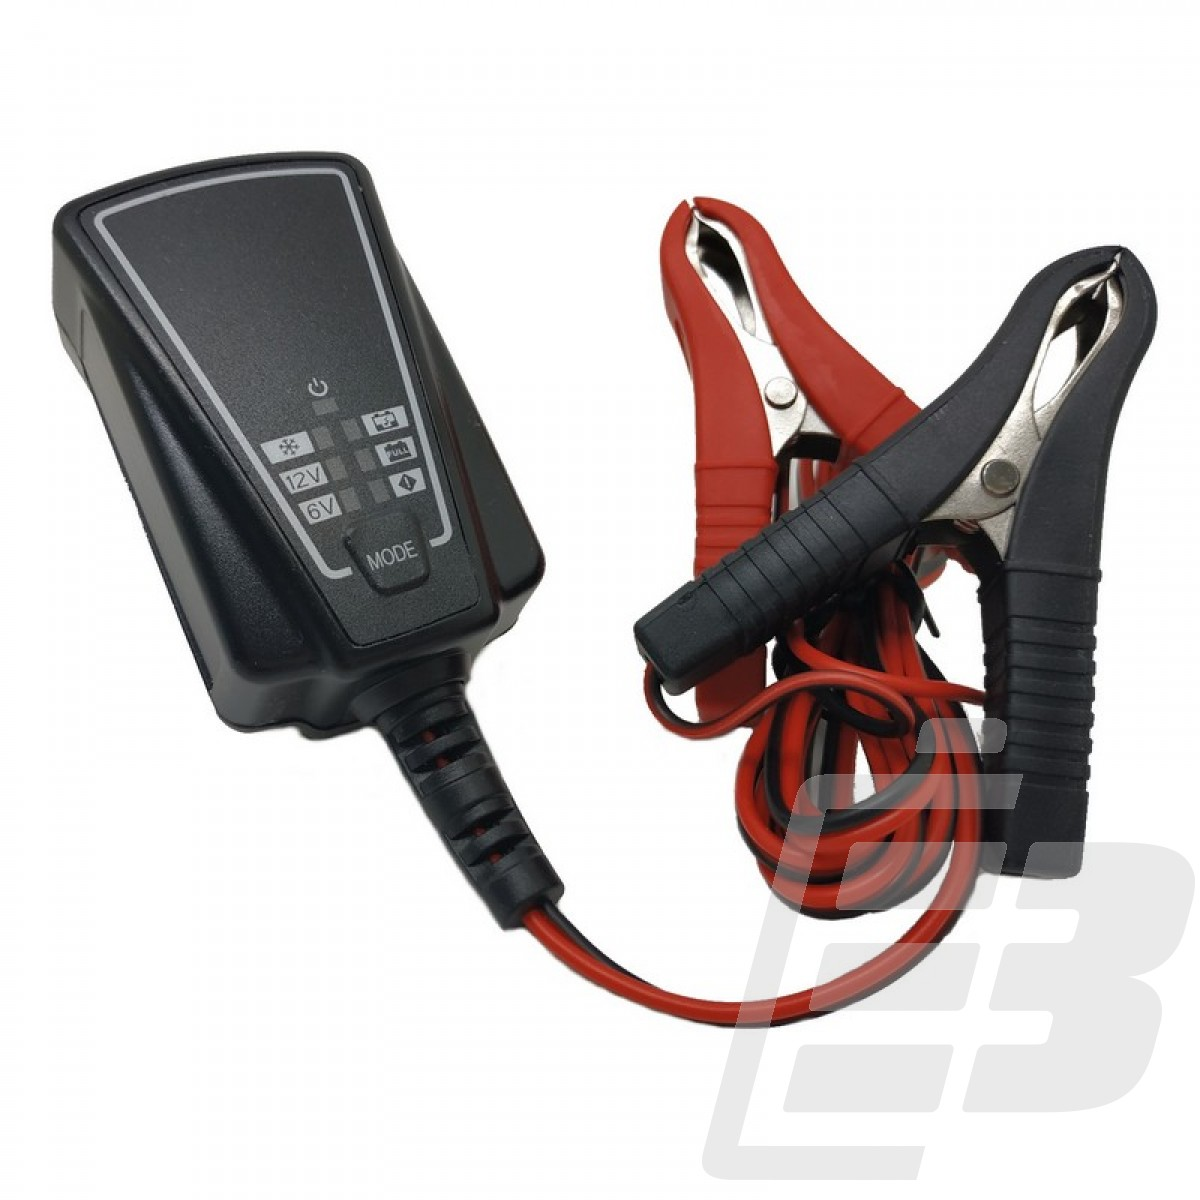 INTELLiGENT MWCC01 Automated Battery Charger_1